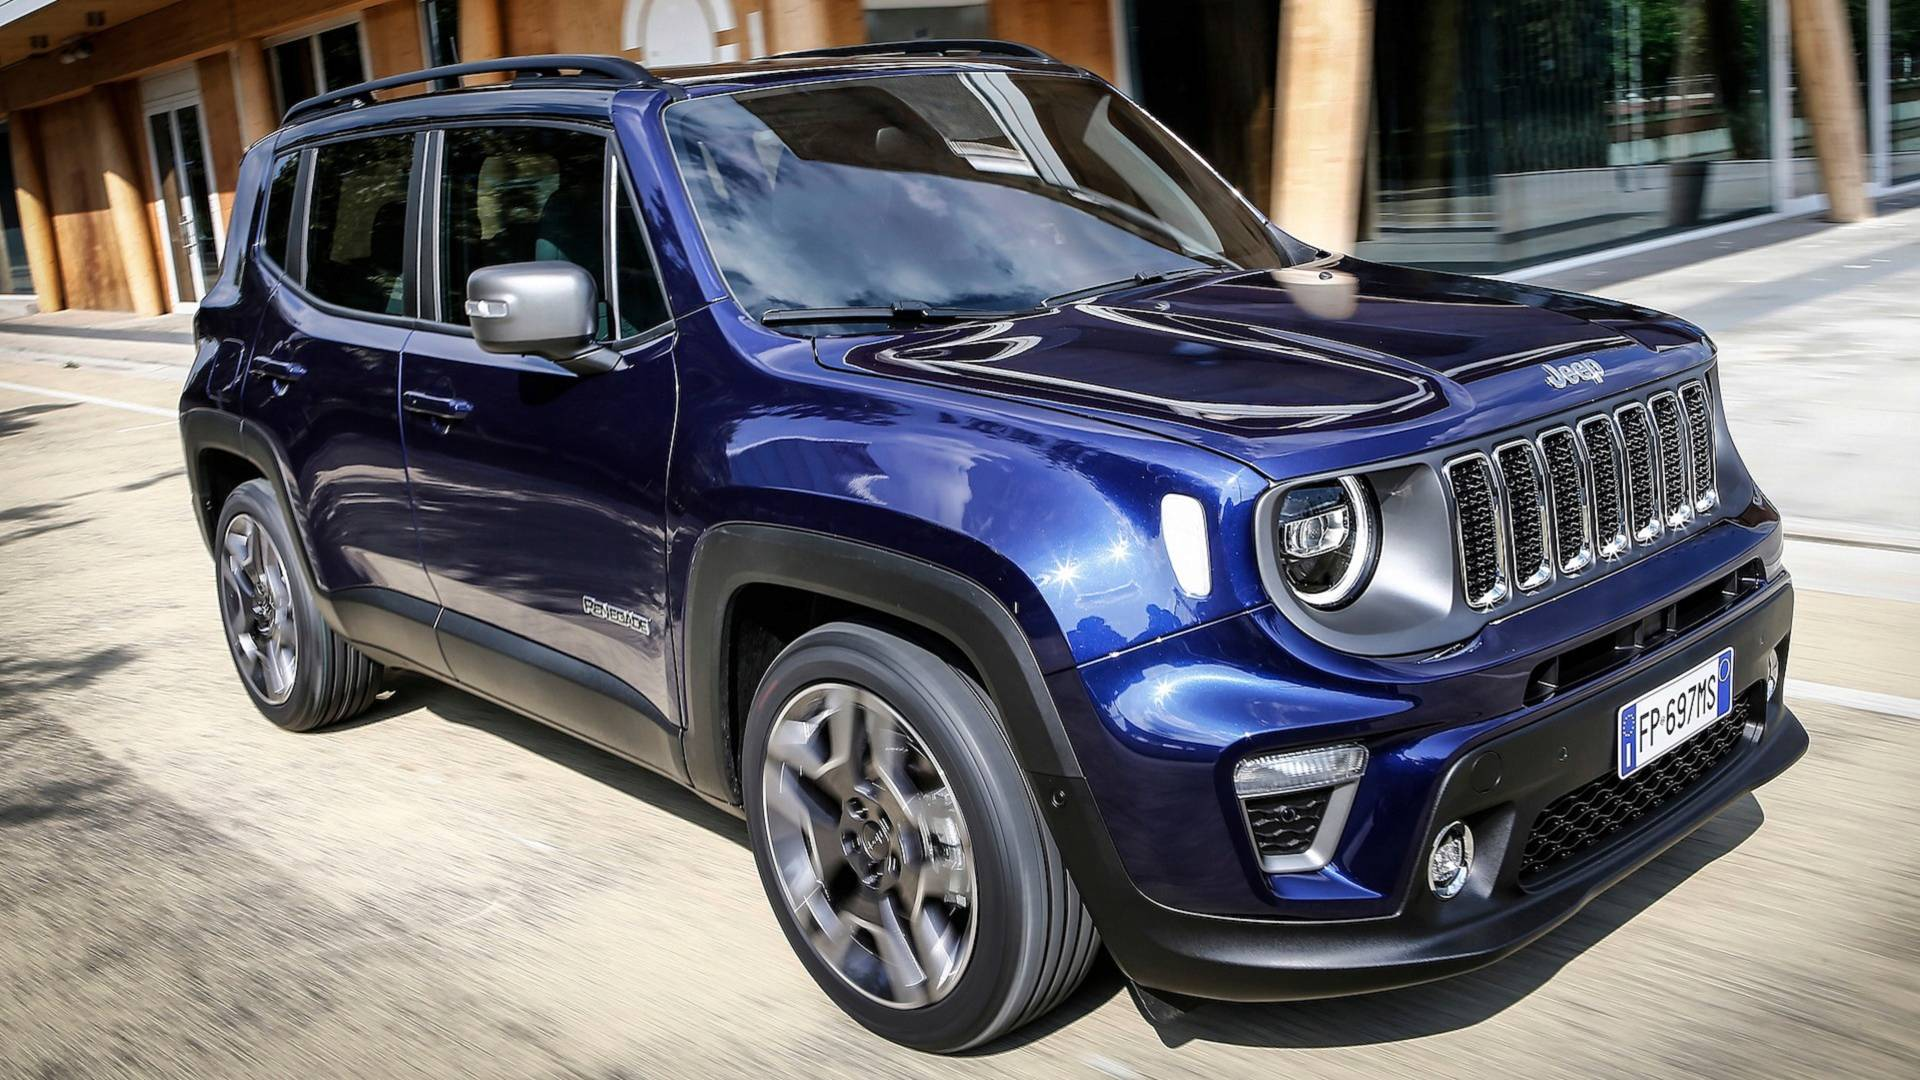 New Jeep Renegade >> Jeep Renegade Crash Tested by the Euro NCAP, Awarded the Coveted 5-Star Rating - autoevolution